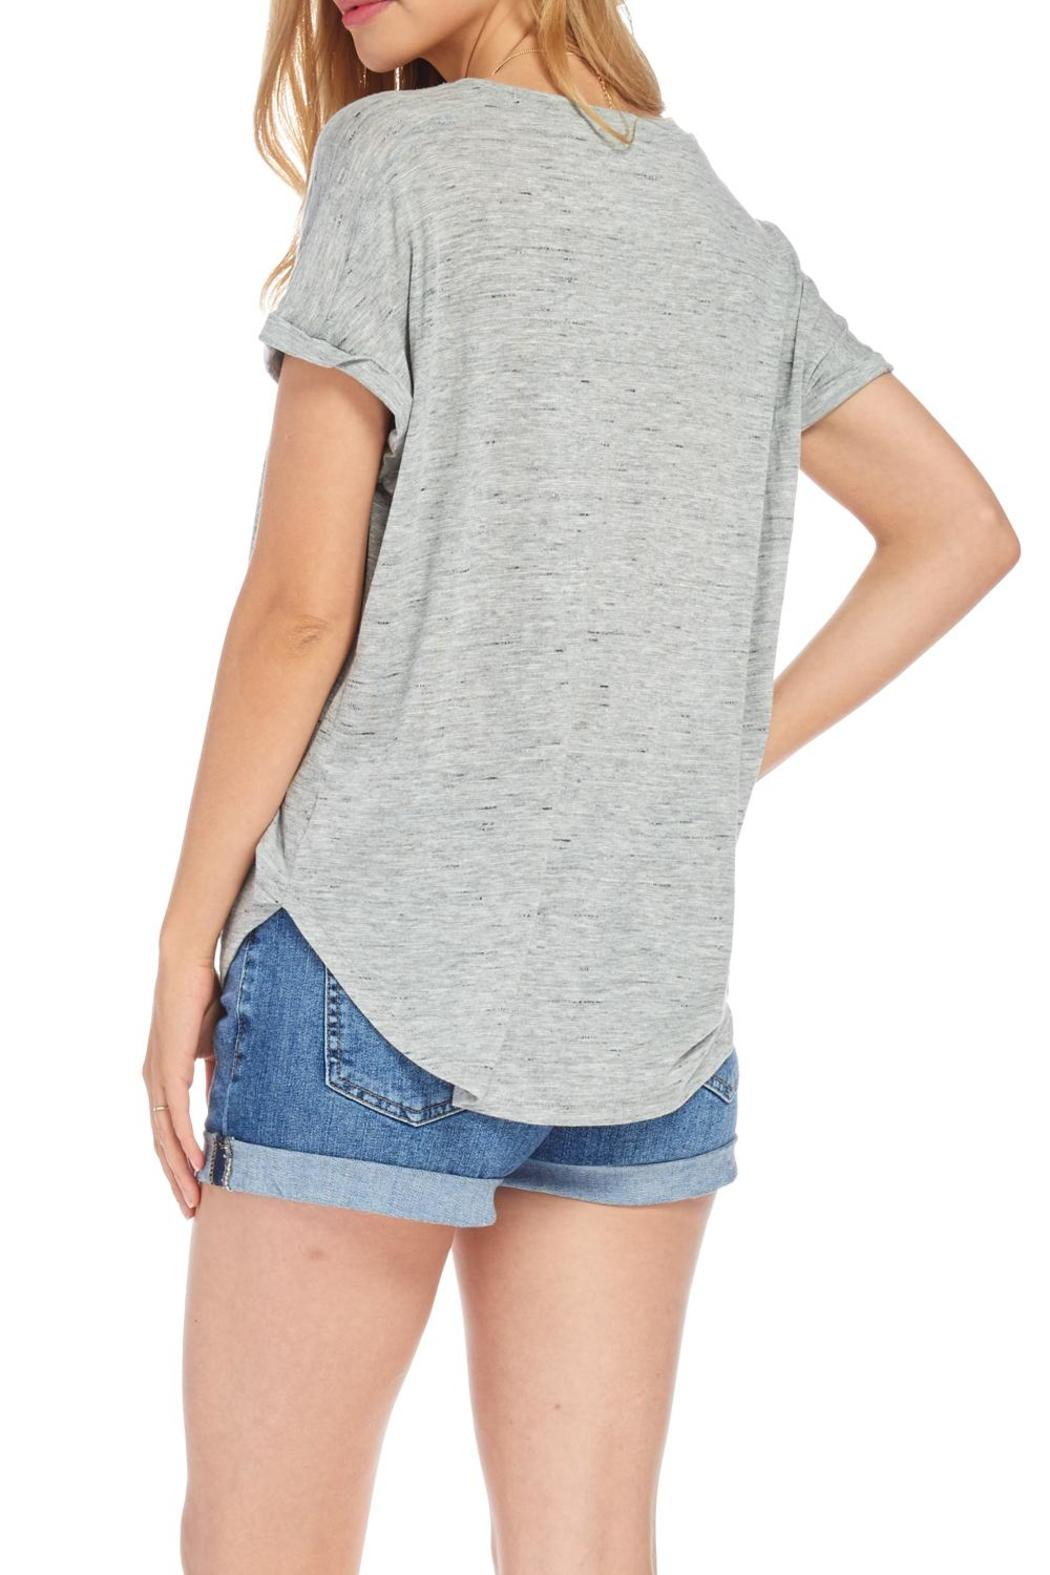 Lush Soft Grey Tee From Nebraska By Apricot Lane Omaha